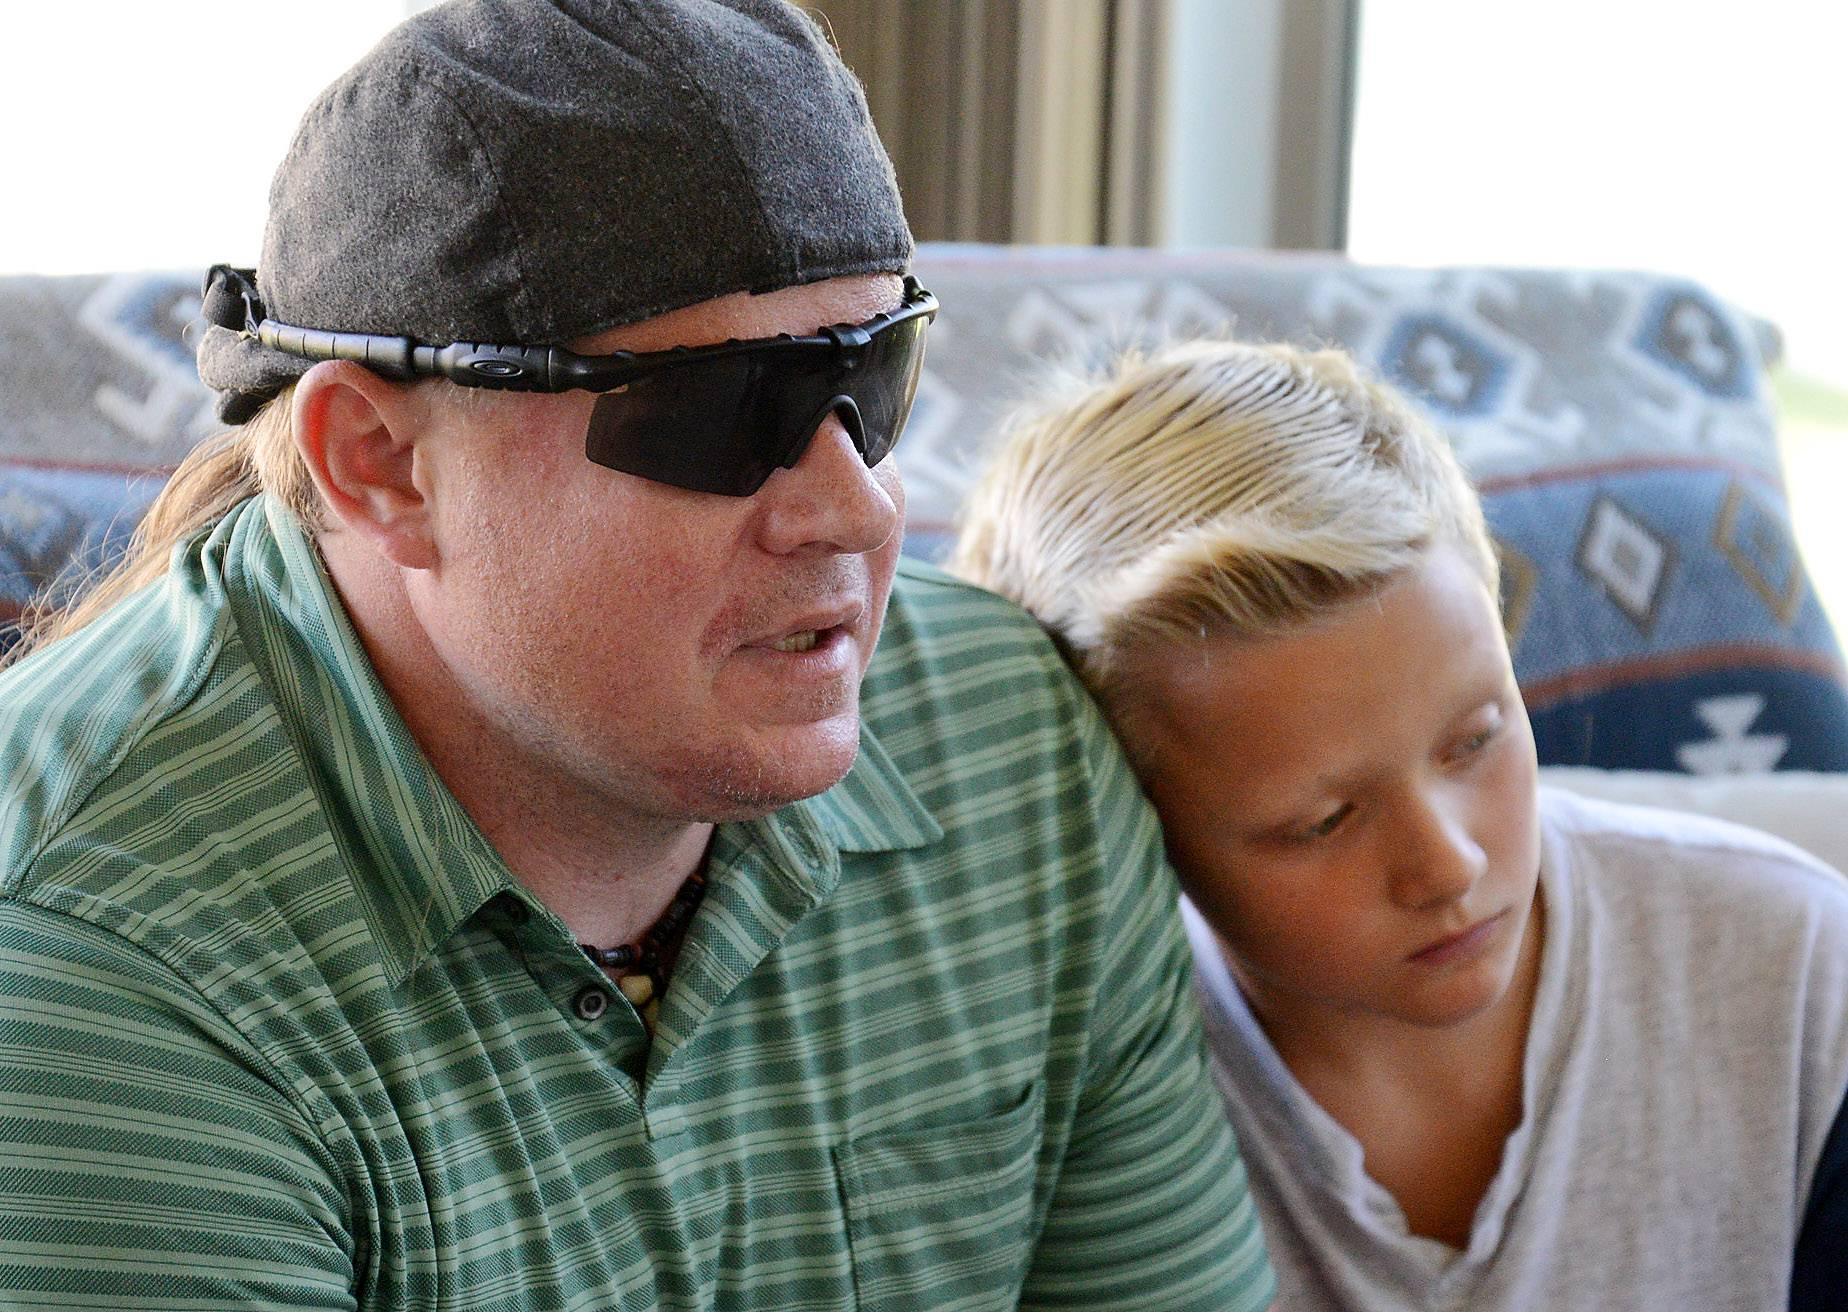 'Superdad' without eyes helps others see rare cancer